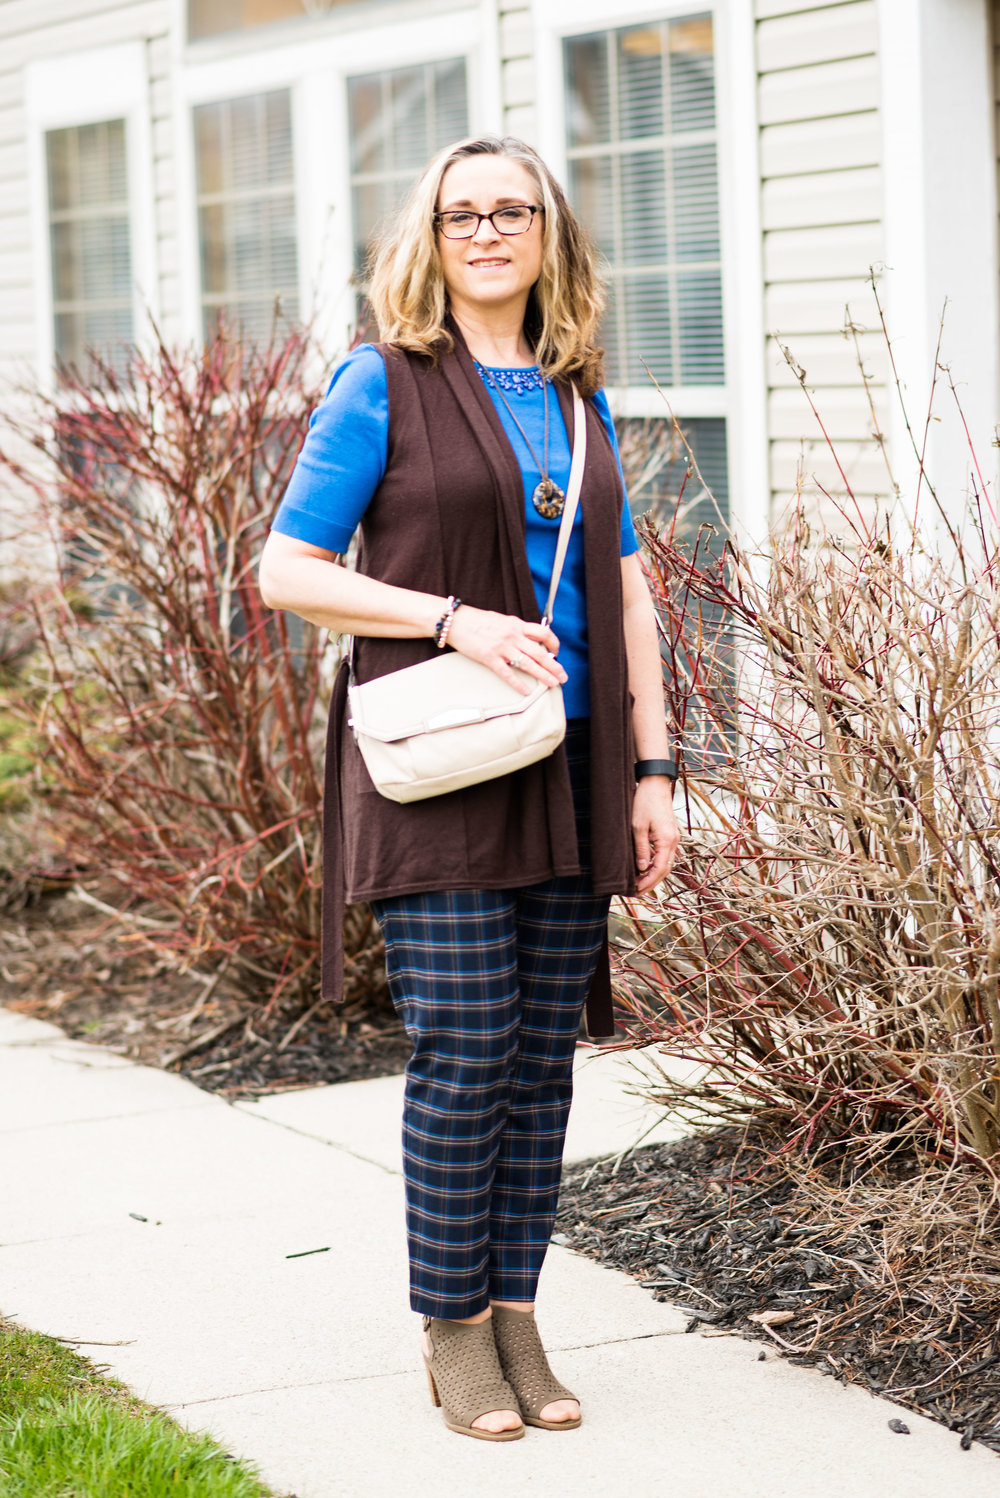 Spring transition - layering with a vest